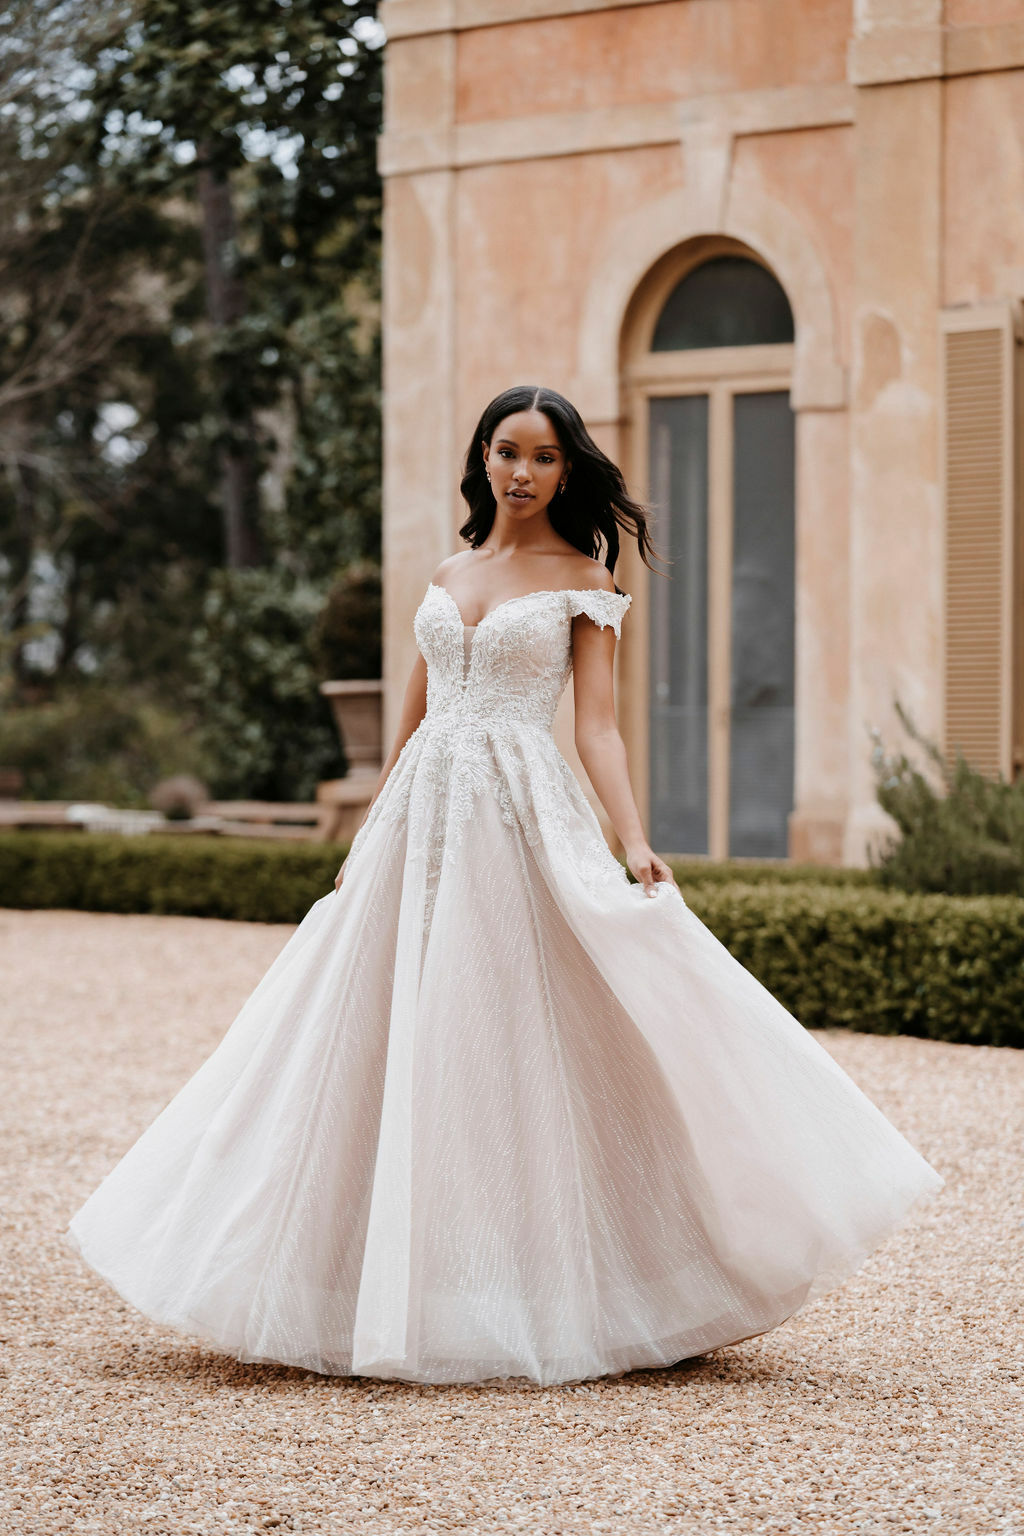 Dazzling beading covers the bodice and off-shoulder cap sleeves of this elegant ballgown.